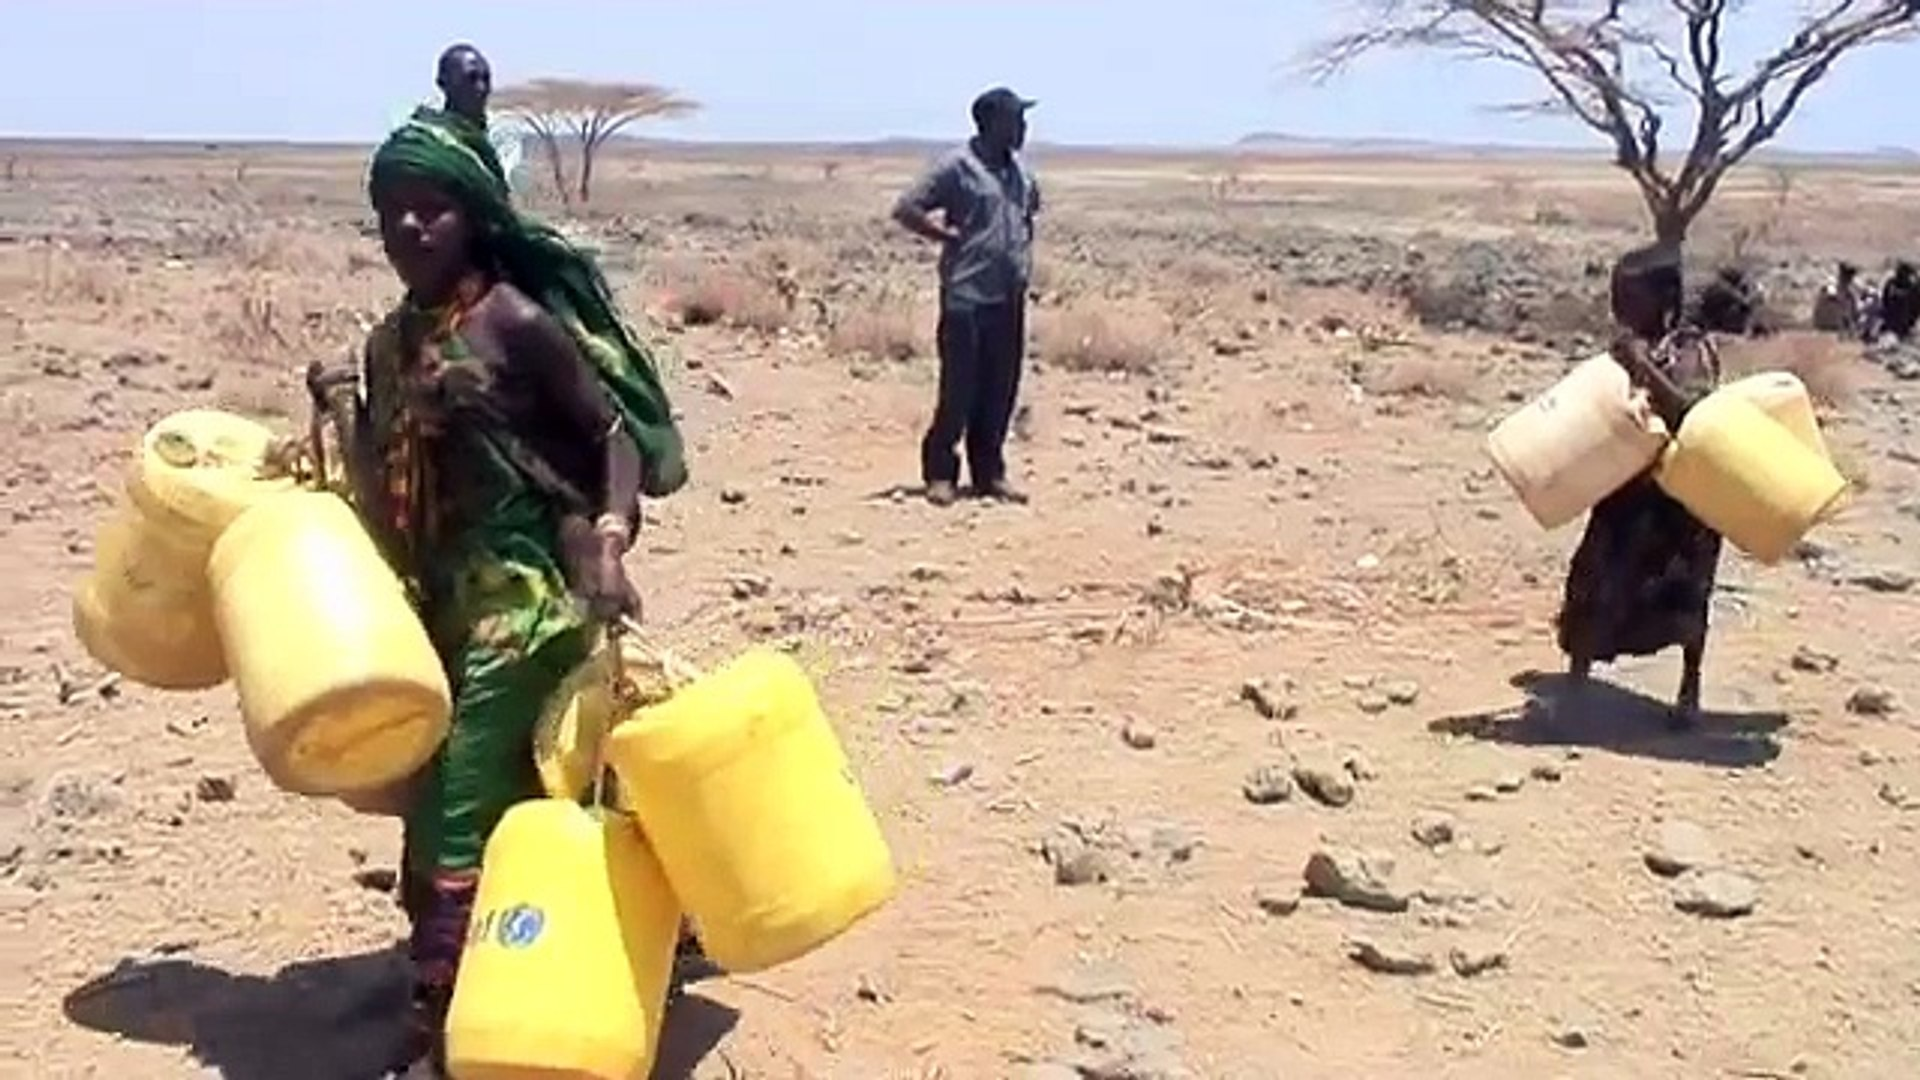 East Africa food crisis appeal: impact of drought on women